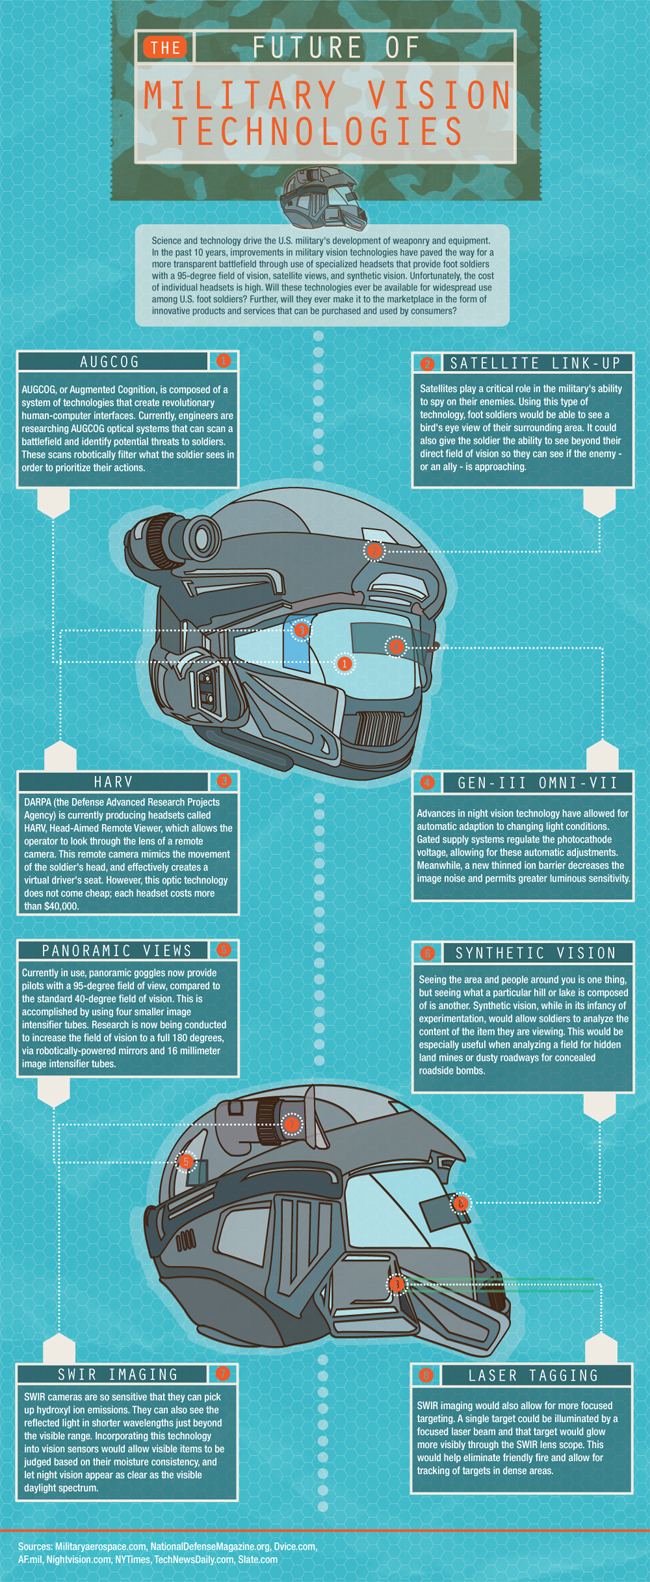 The Halo Helmet